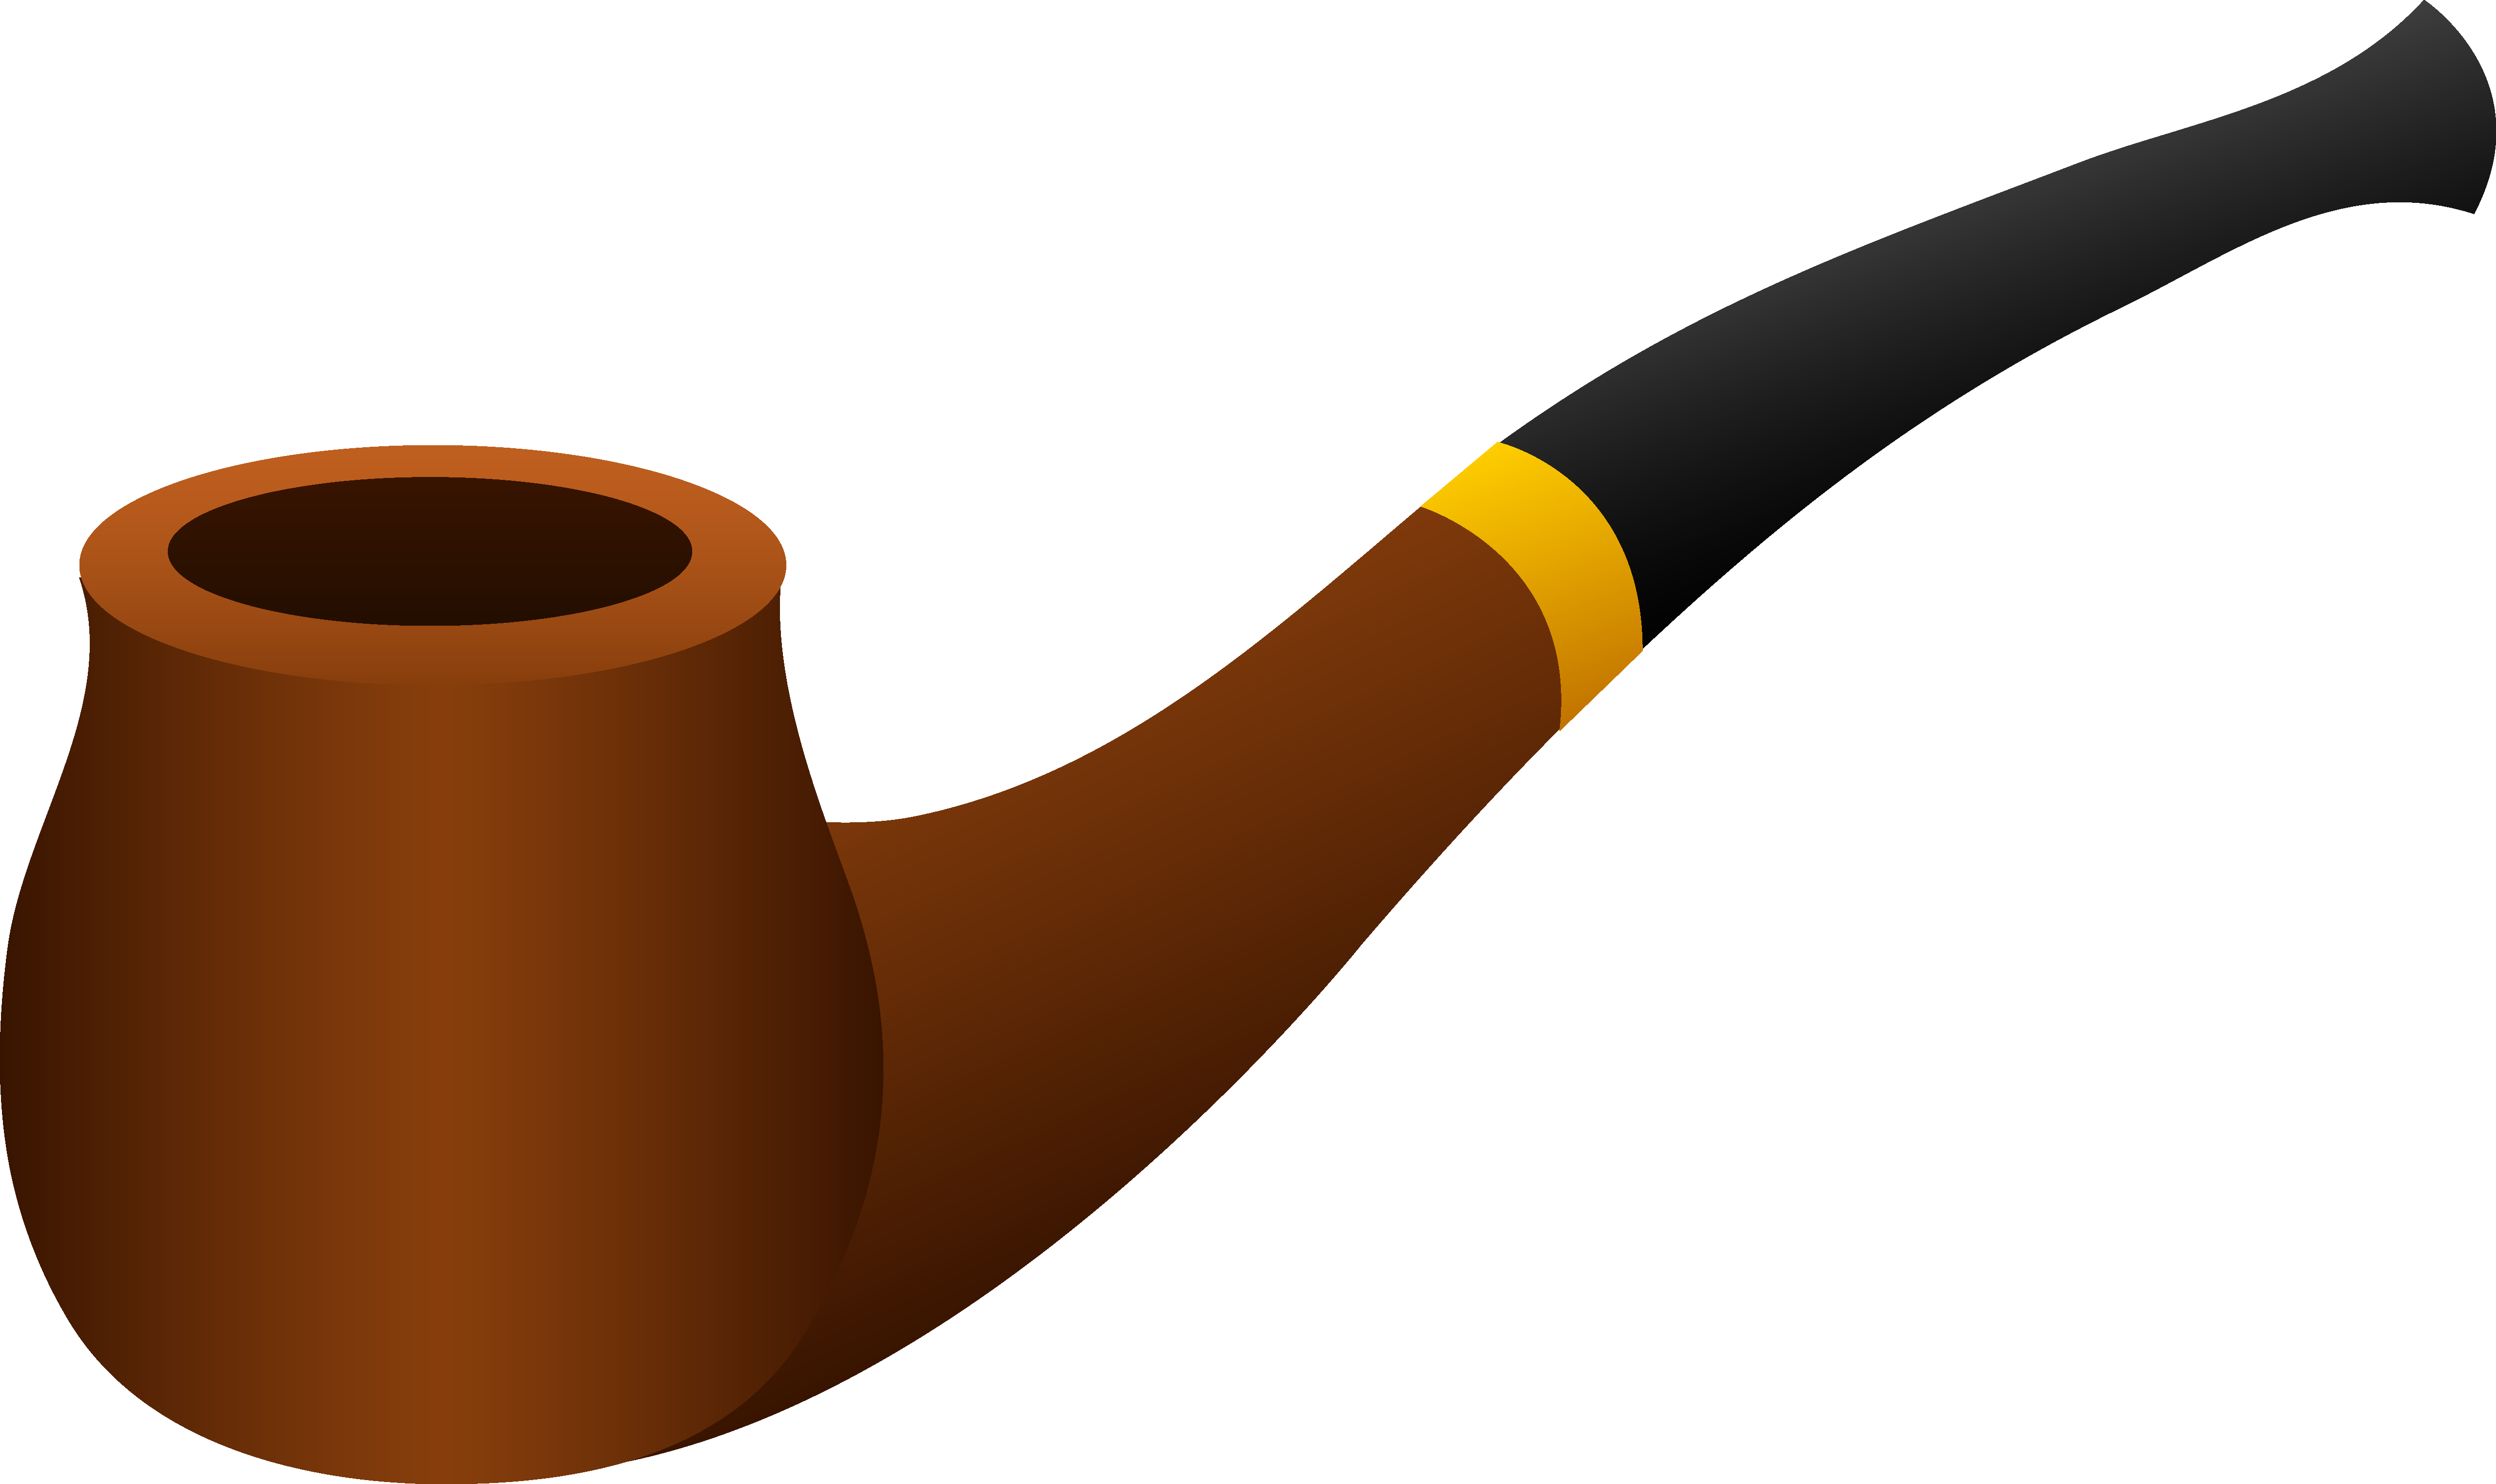 Transparent pipes tobacco. Terrific pipe clipart design